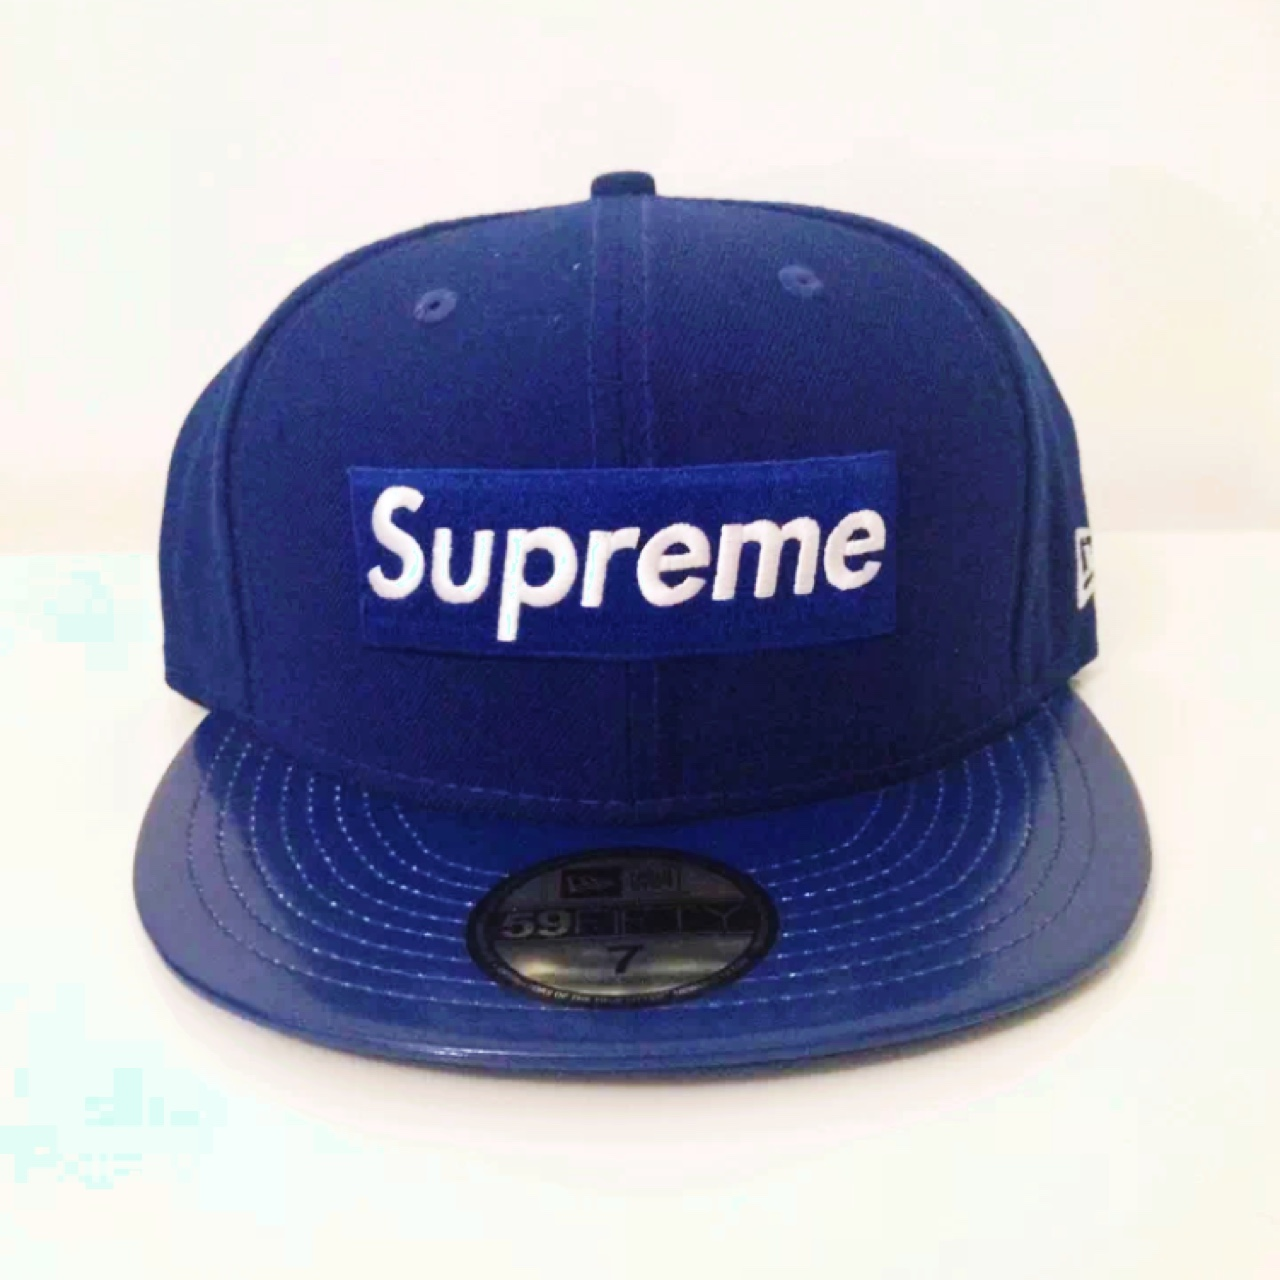 supreme baseball cap trucker hat royal creps locker